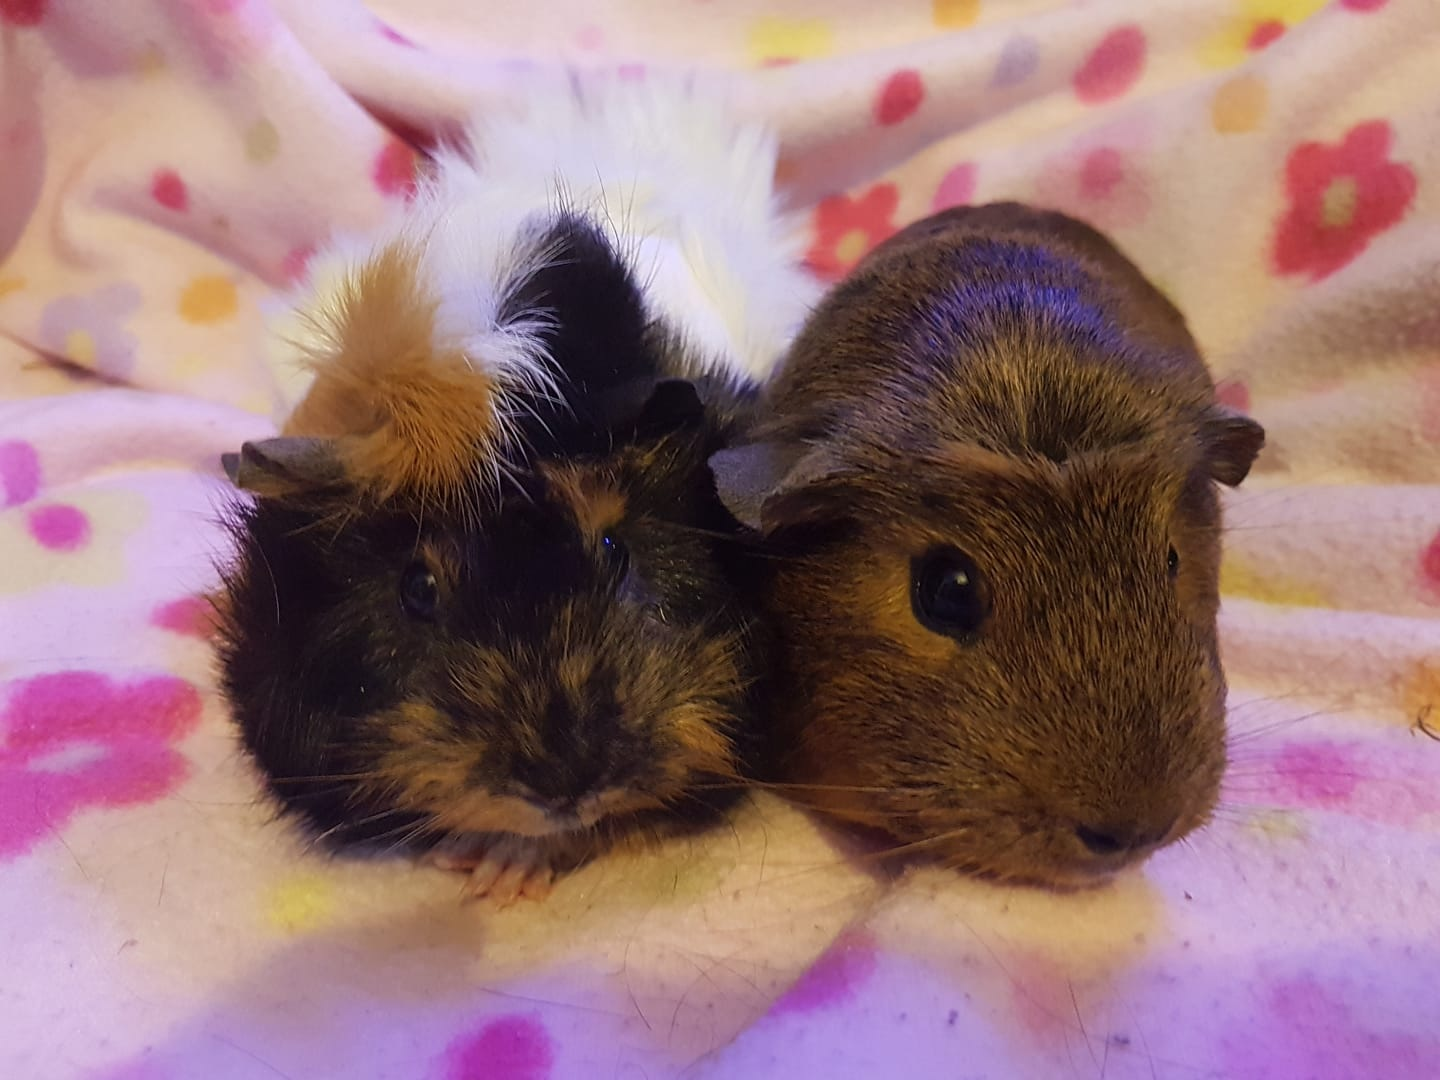 Dolly & Petunia June 16th 2018